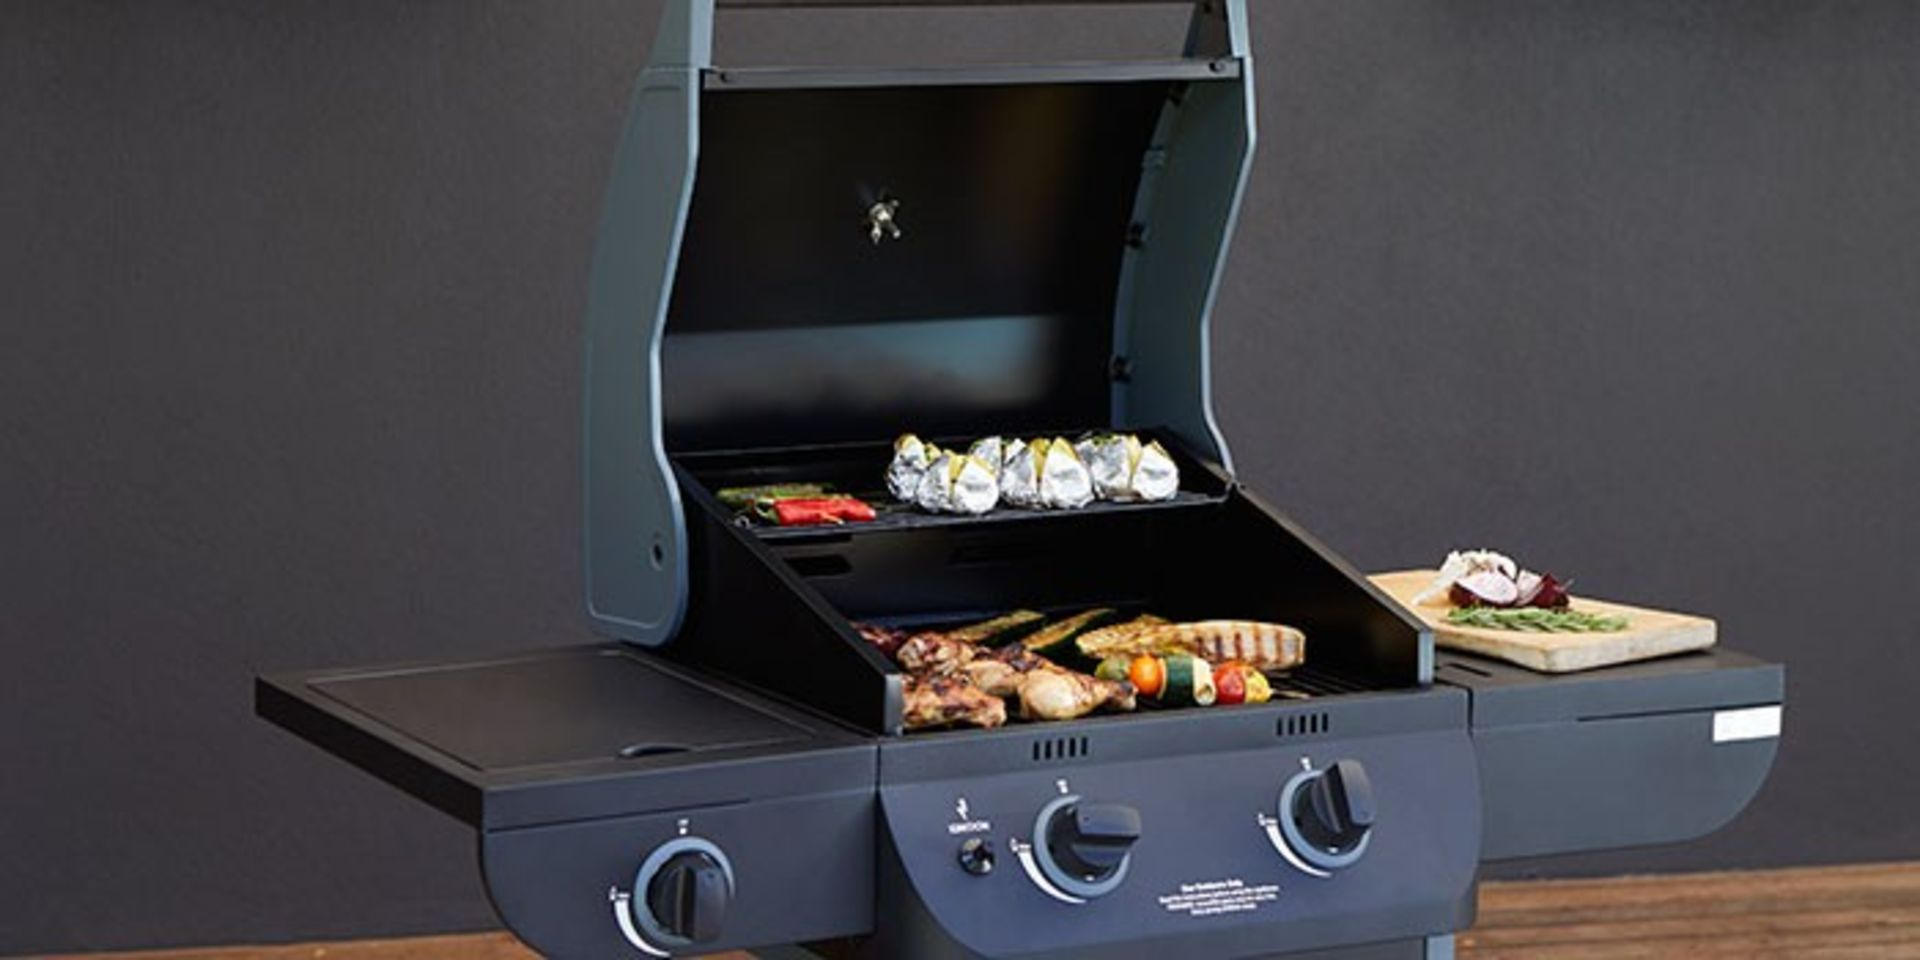 (P8) 1x Texas Nimbus 2 Burner Gas BBQ RRP £80. Contents Appear As New – Unused & Not Previously Re